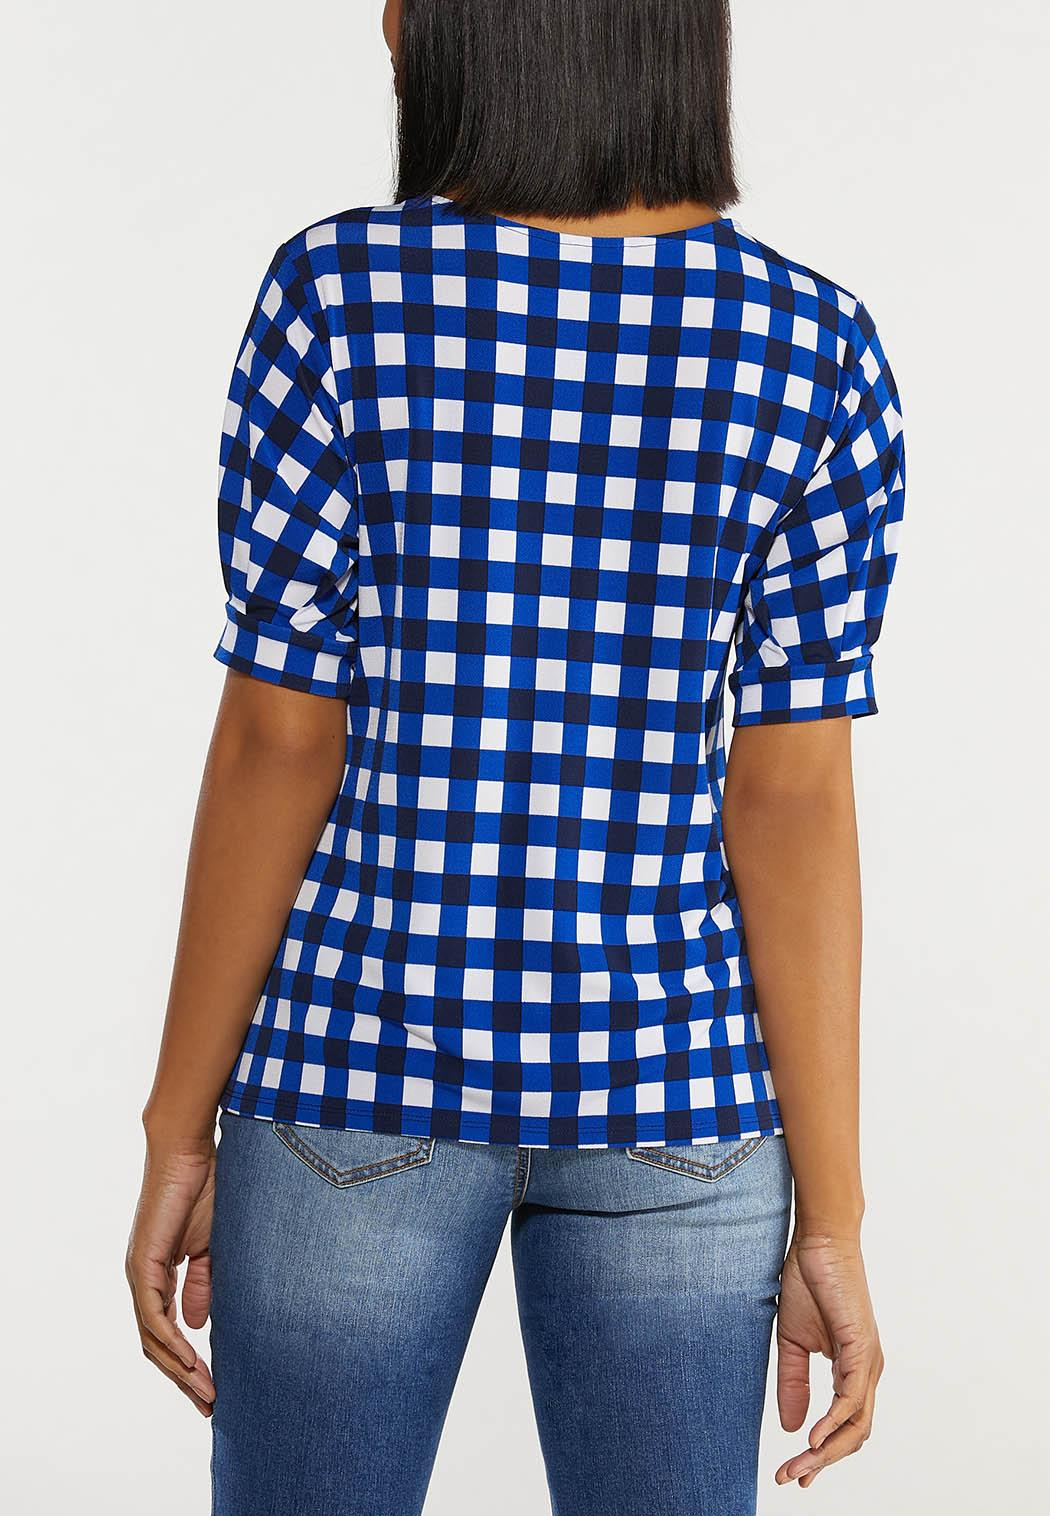 Blue Checkered Top (Item #44533740)